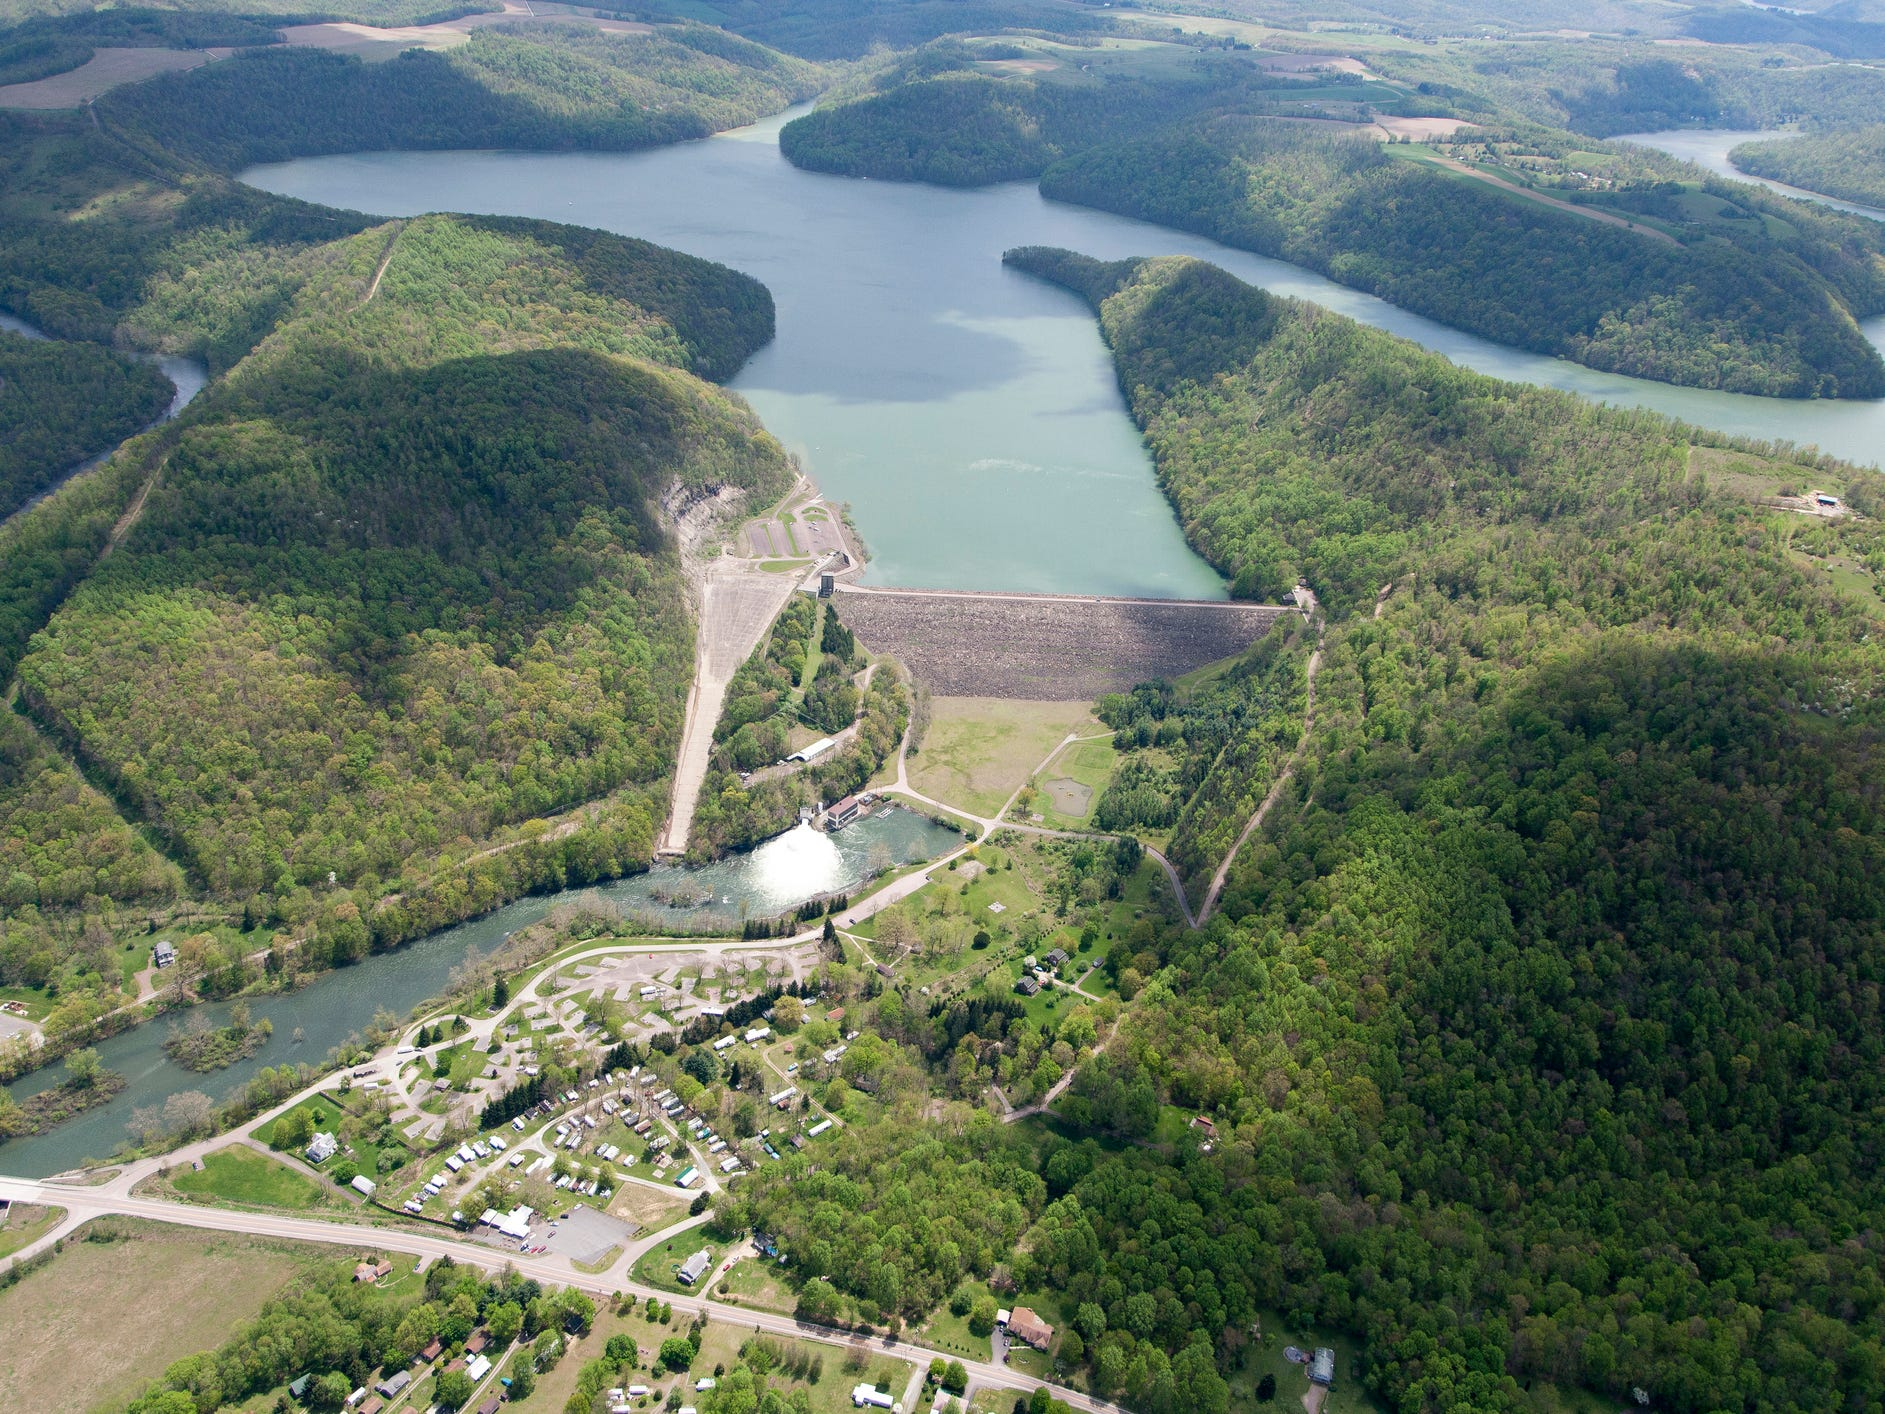 Youghiogheny Dam in Pennsylvania.